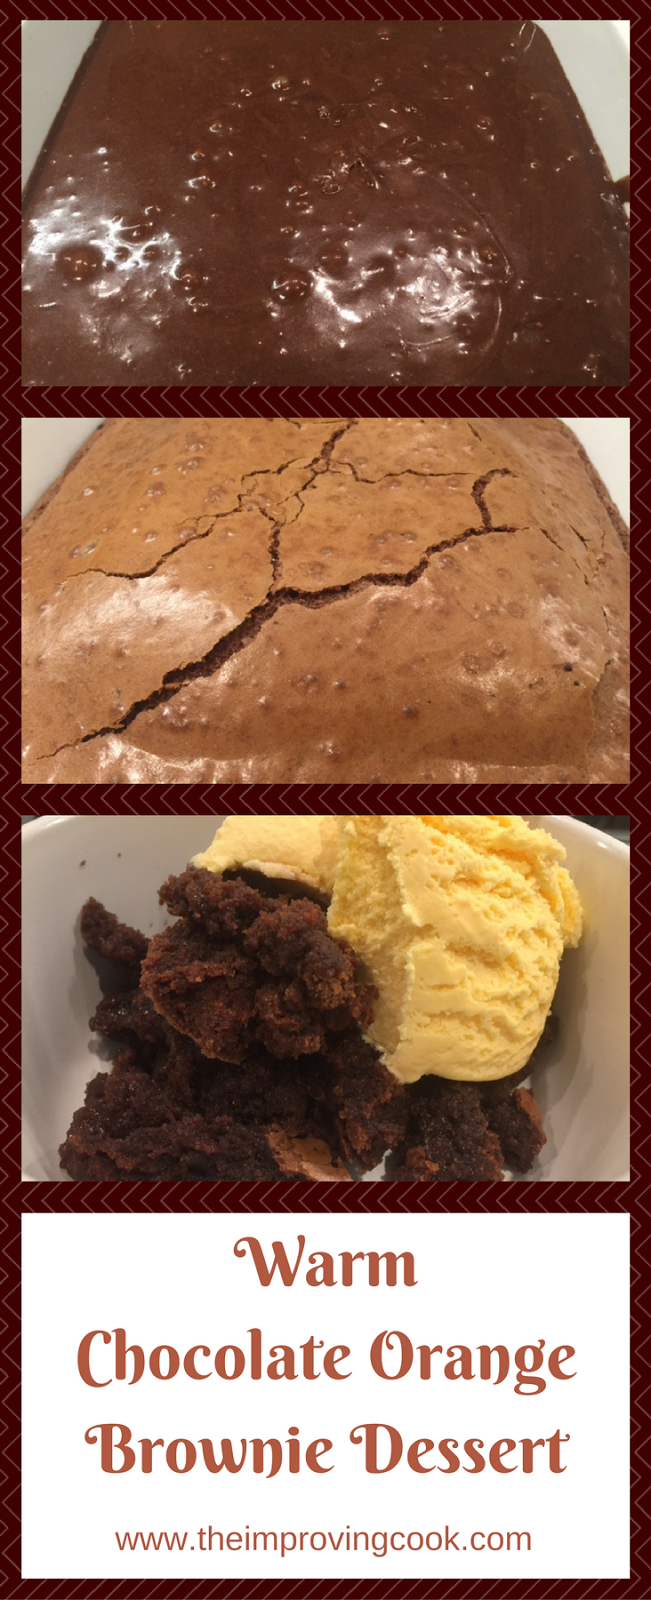 Warm Chocolate Orange Brownie Dessert pinnable image